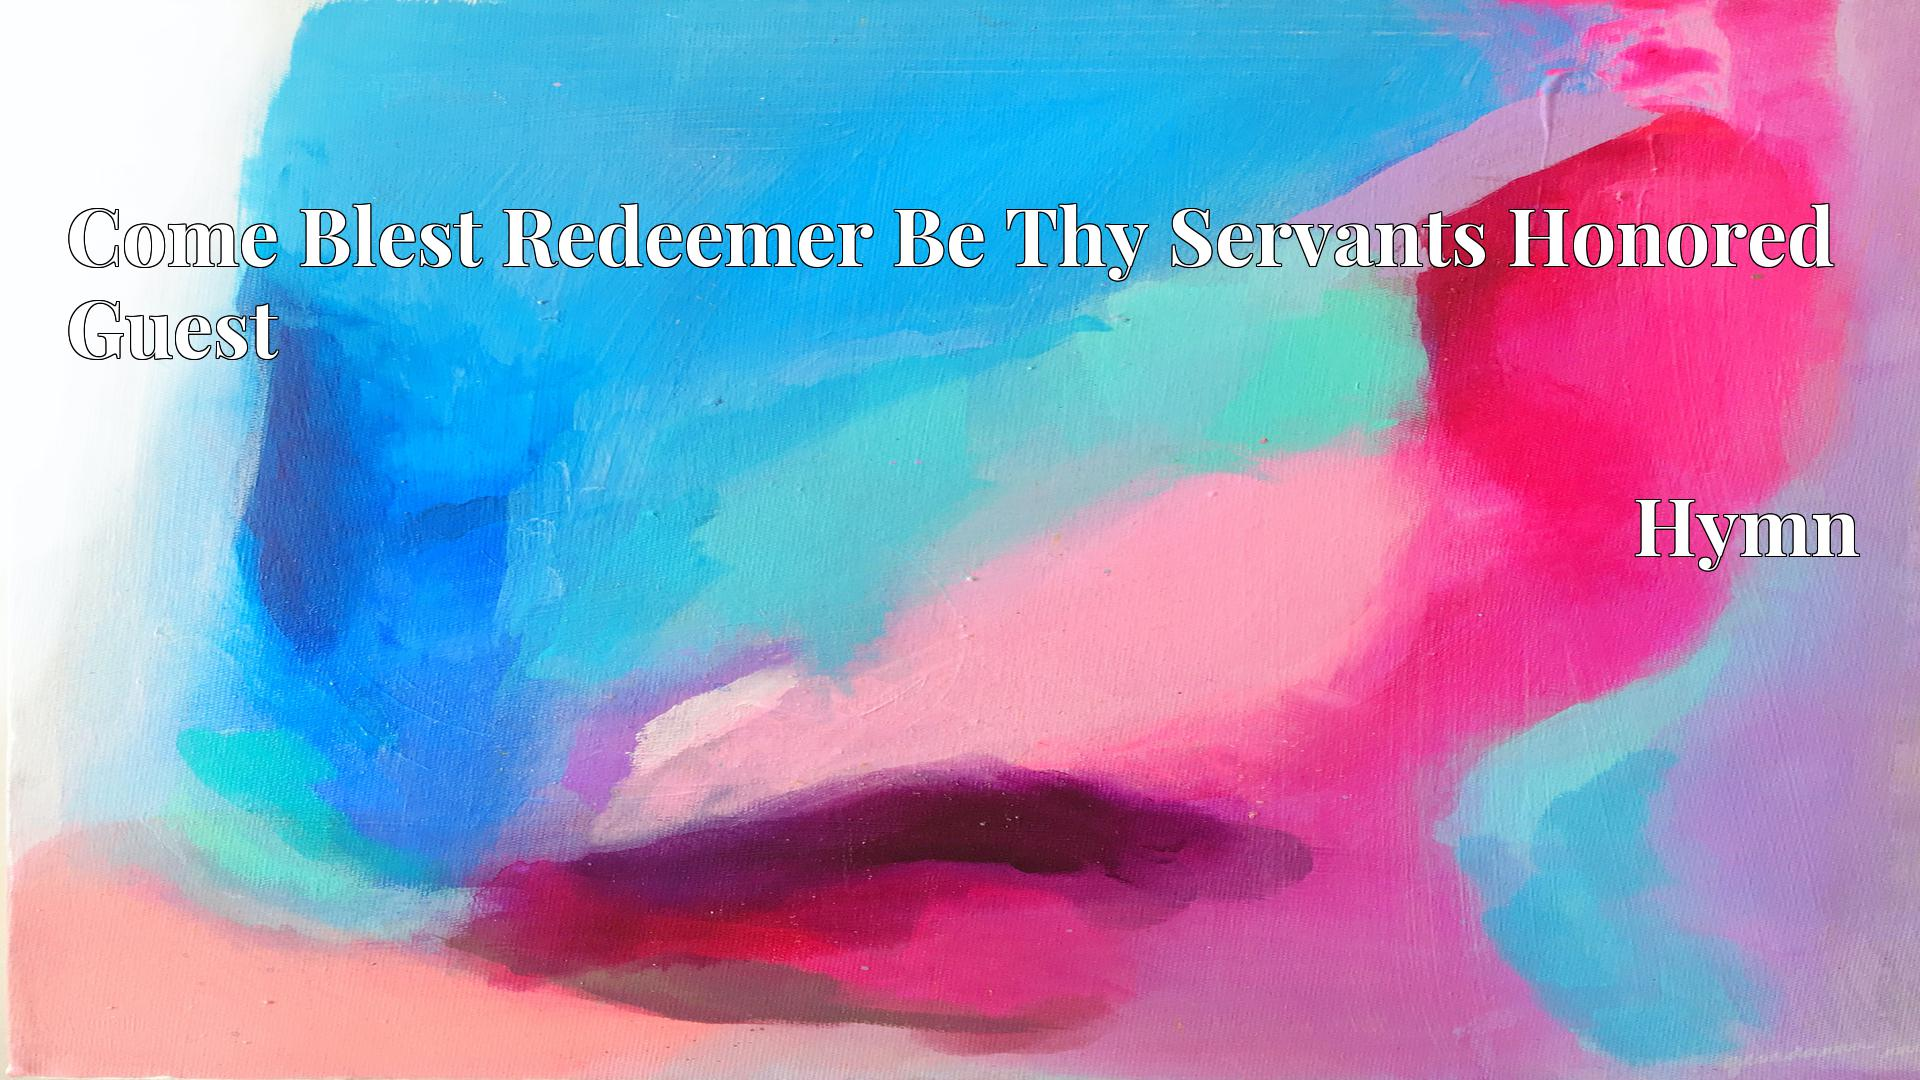 Come Blest Redeemer Be Thy Servants Honored Guest - Hymn